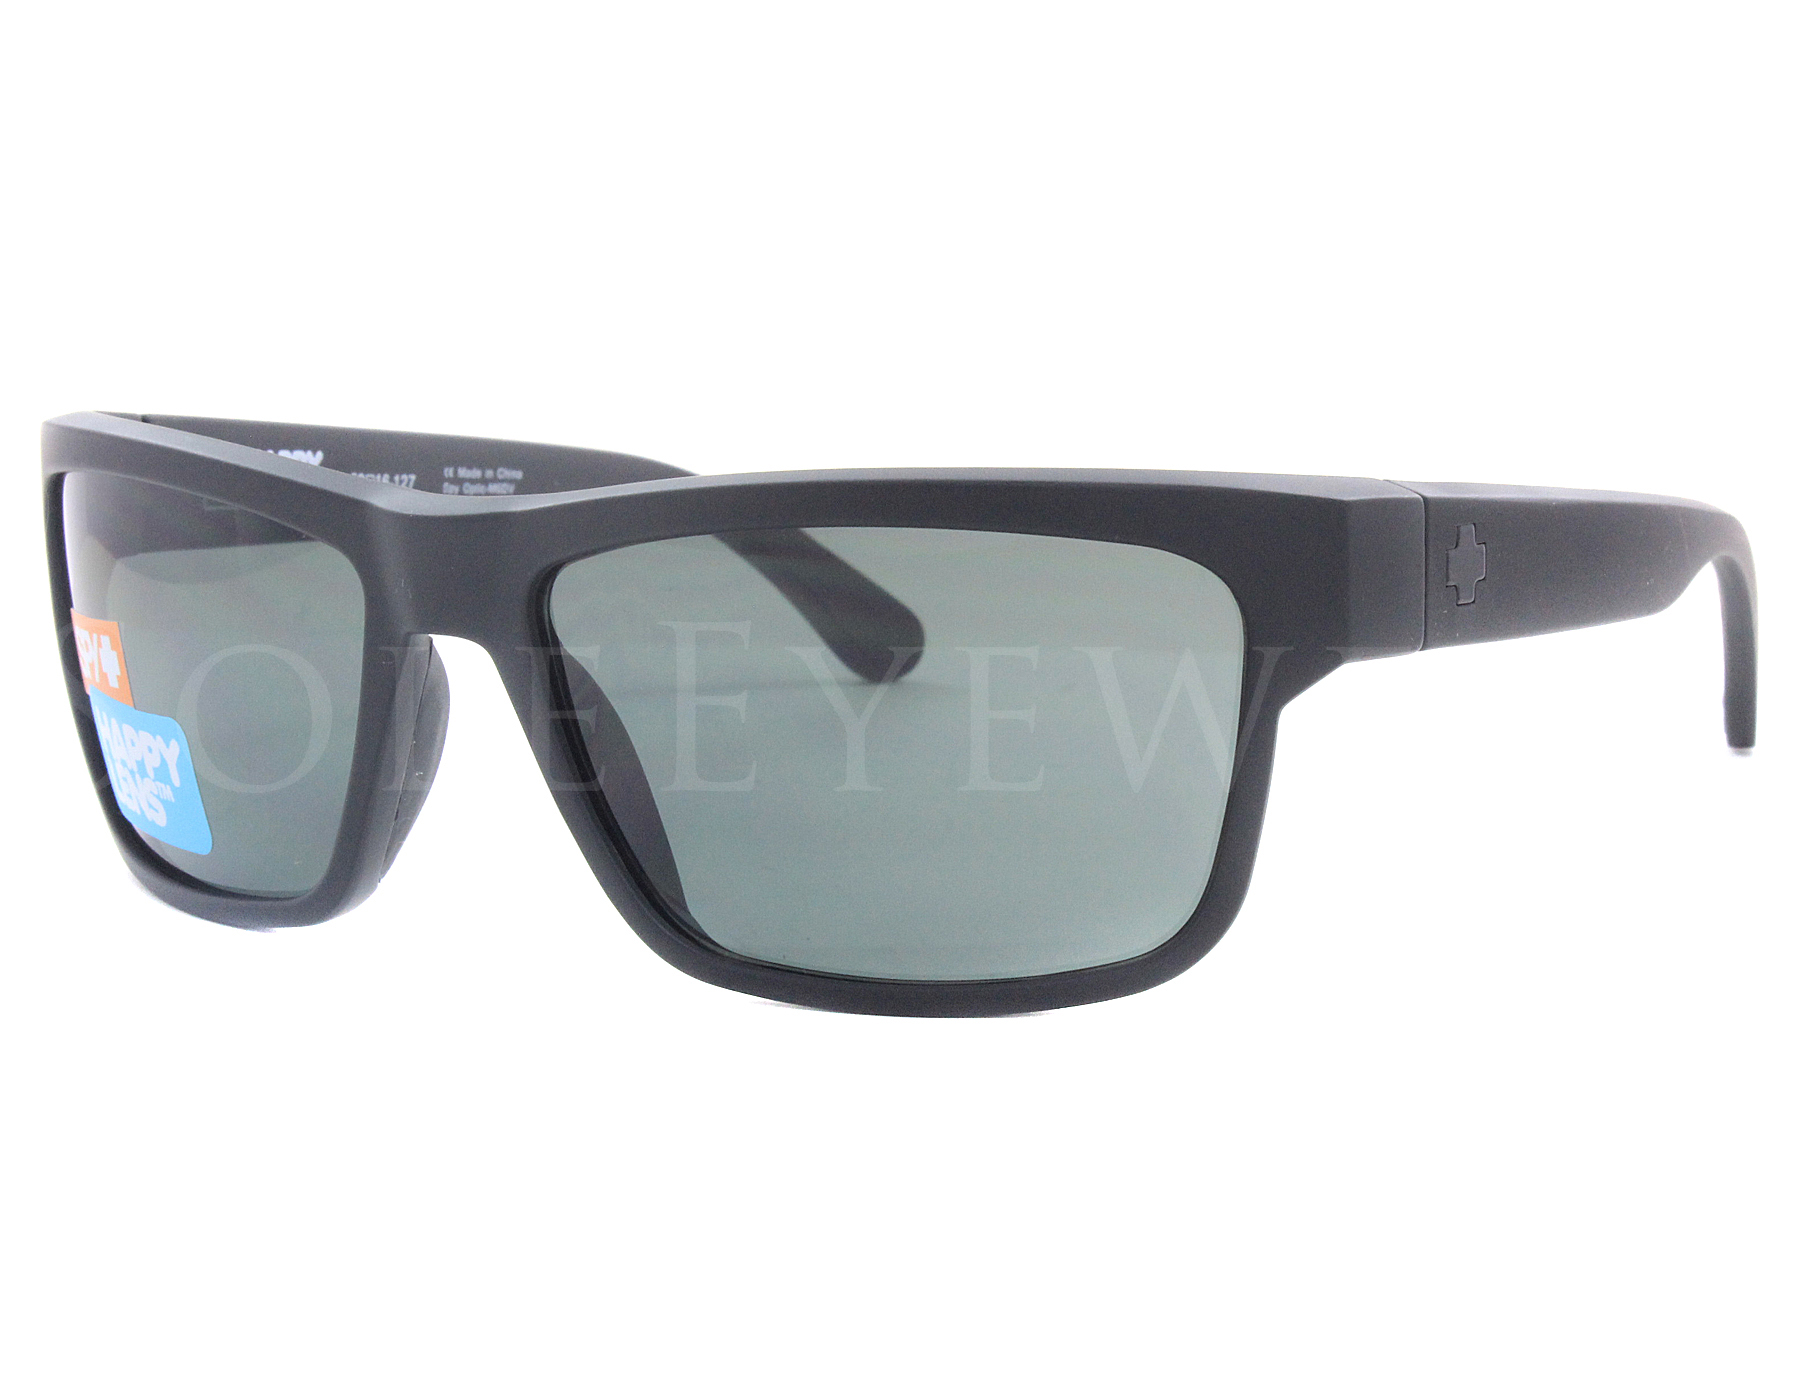 8190b53e49e1b Details about NEW Spy Optics Frazier 673176374863 Matte Black   Happy Gray  Green Sunglasses